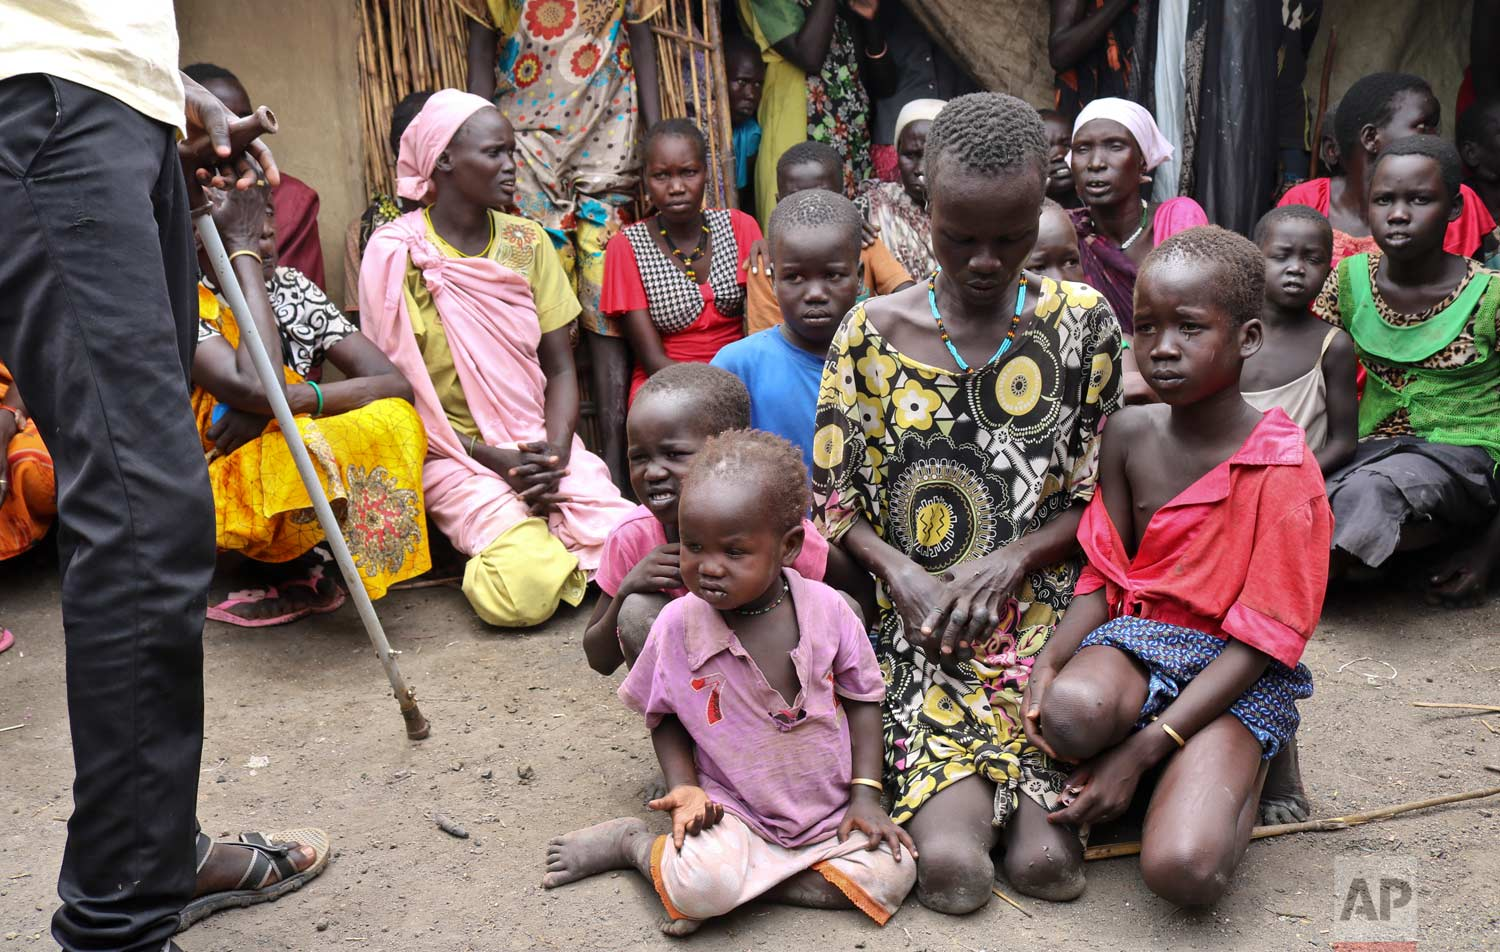 In this photo taken Friday, May 26, 2017, mother Nyayan Koang, who is unable to stand up due to polio, sits with her other children minutes after being reunited with her son James, a former child soldier walking with a crutch, left, and saw him for the first time in 3 years, in Bentiu, South Sudan. (AP Photo/Sam Mednick)